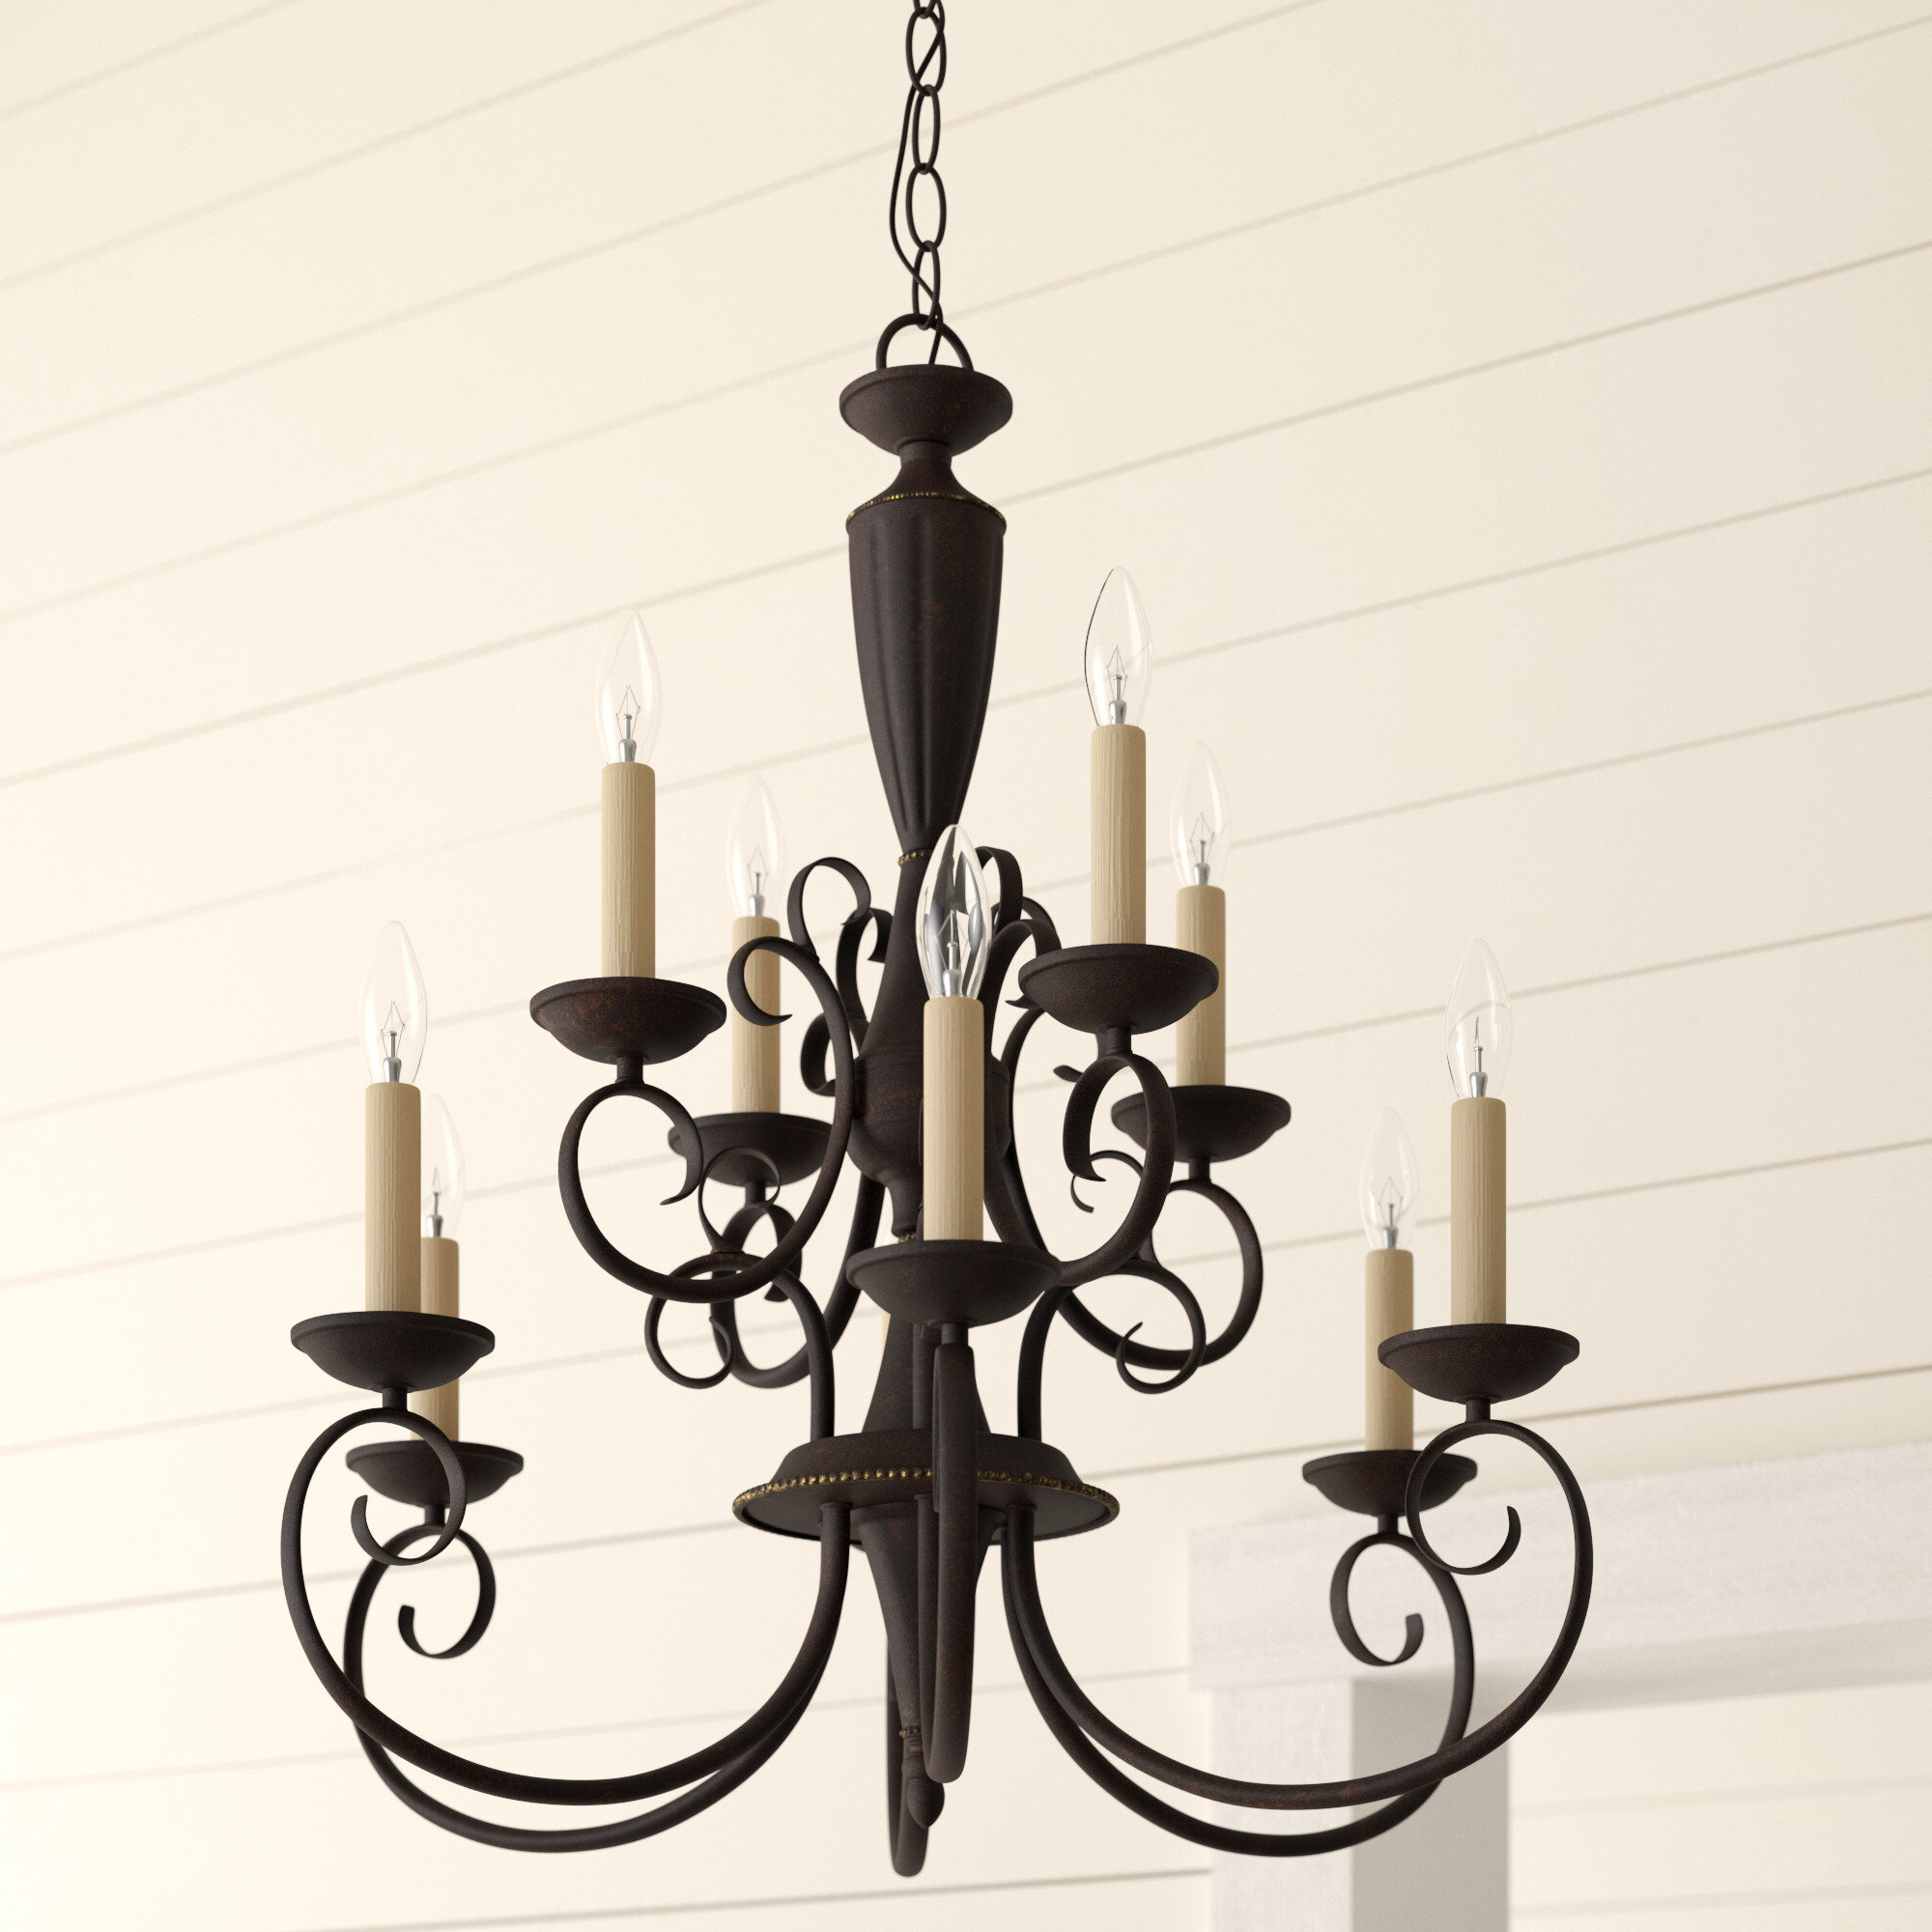 Farmhouse & Rustic Charlton Home Chandeliers (View 5 of 25)